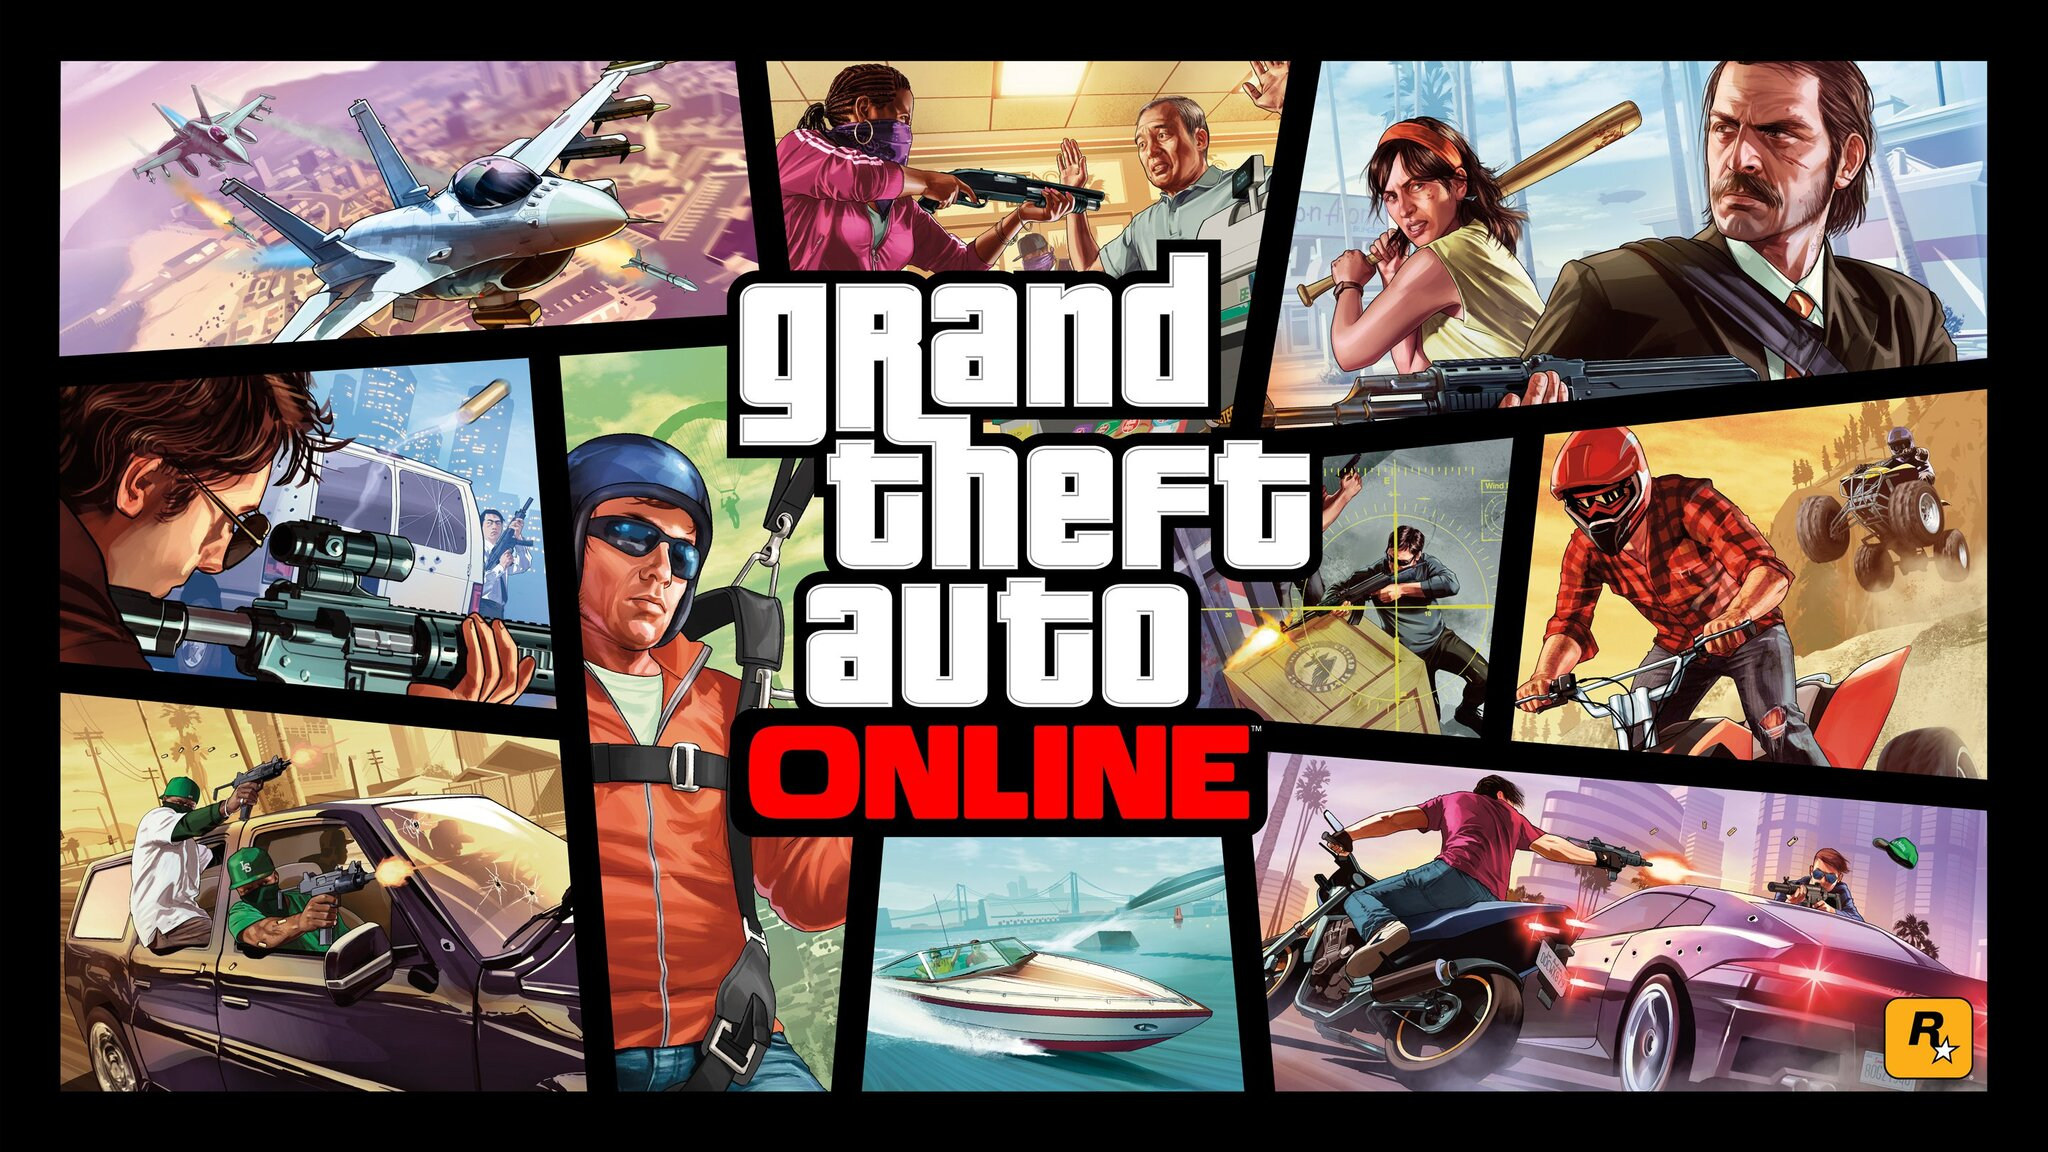 2048x1152 gta online logo 2048x1152 resolution hd 4k wallpapers images backgrounds photos and - Gta wallpaper download ...